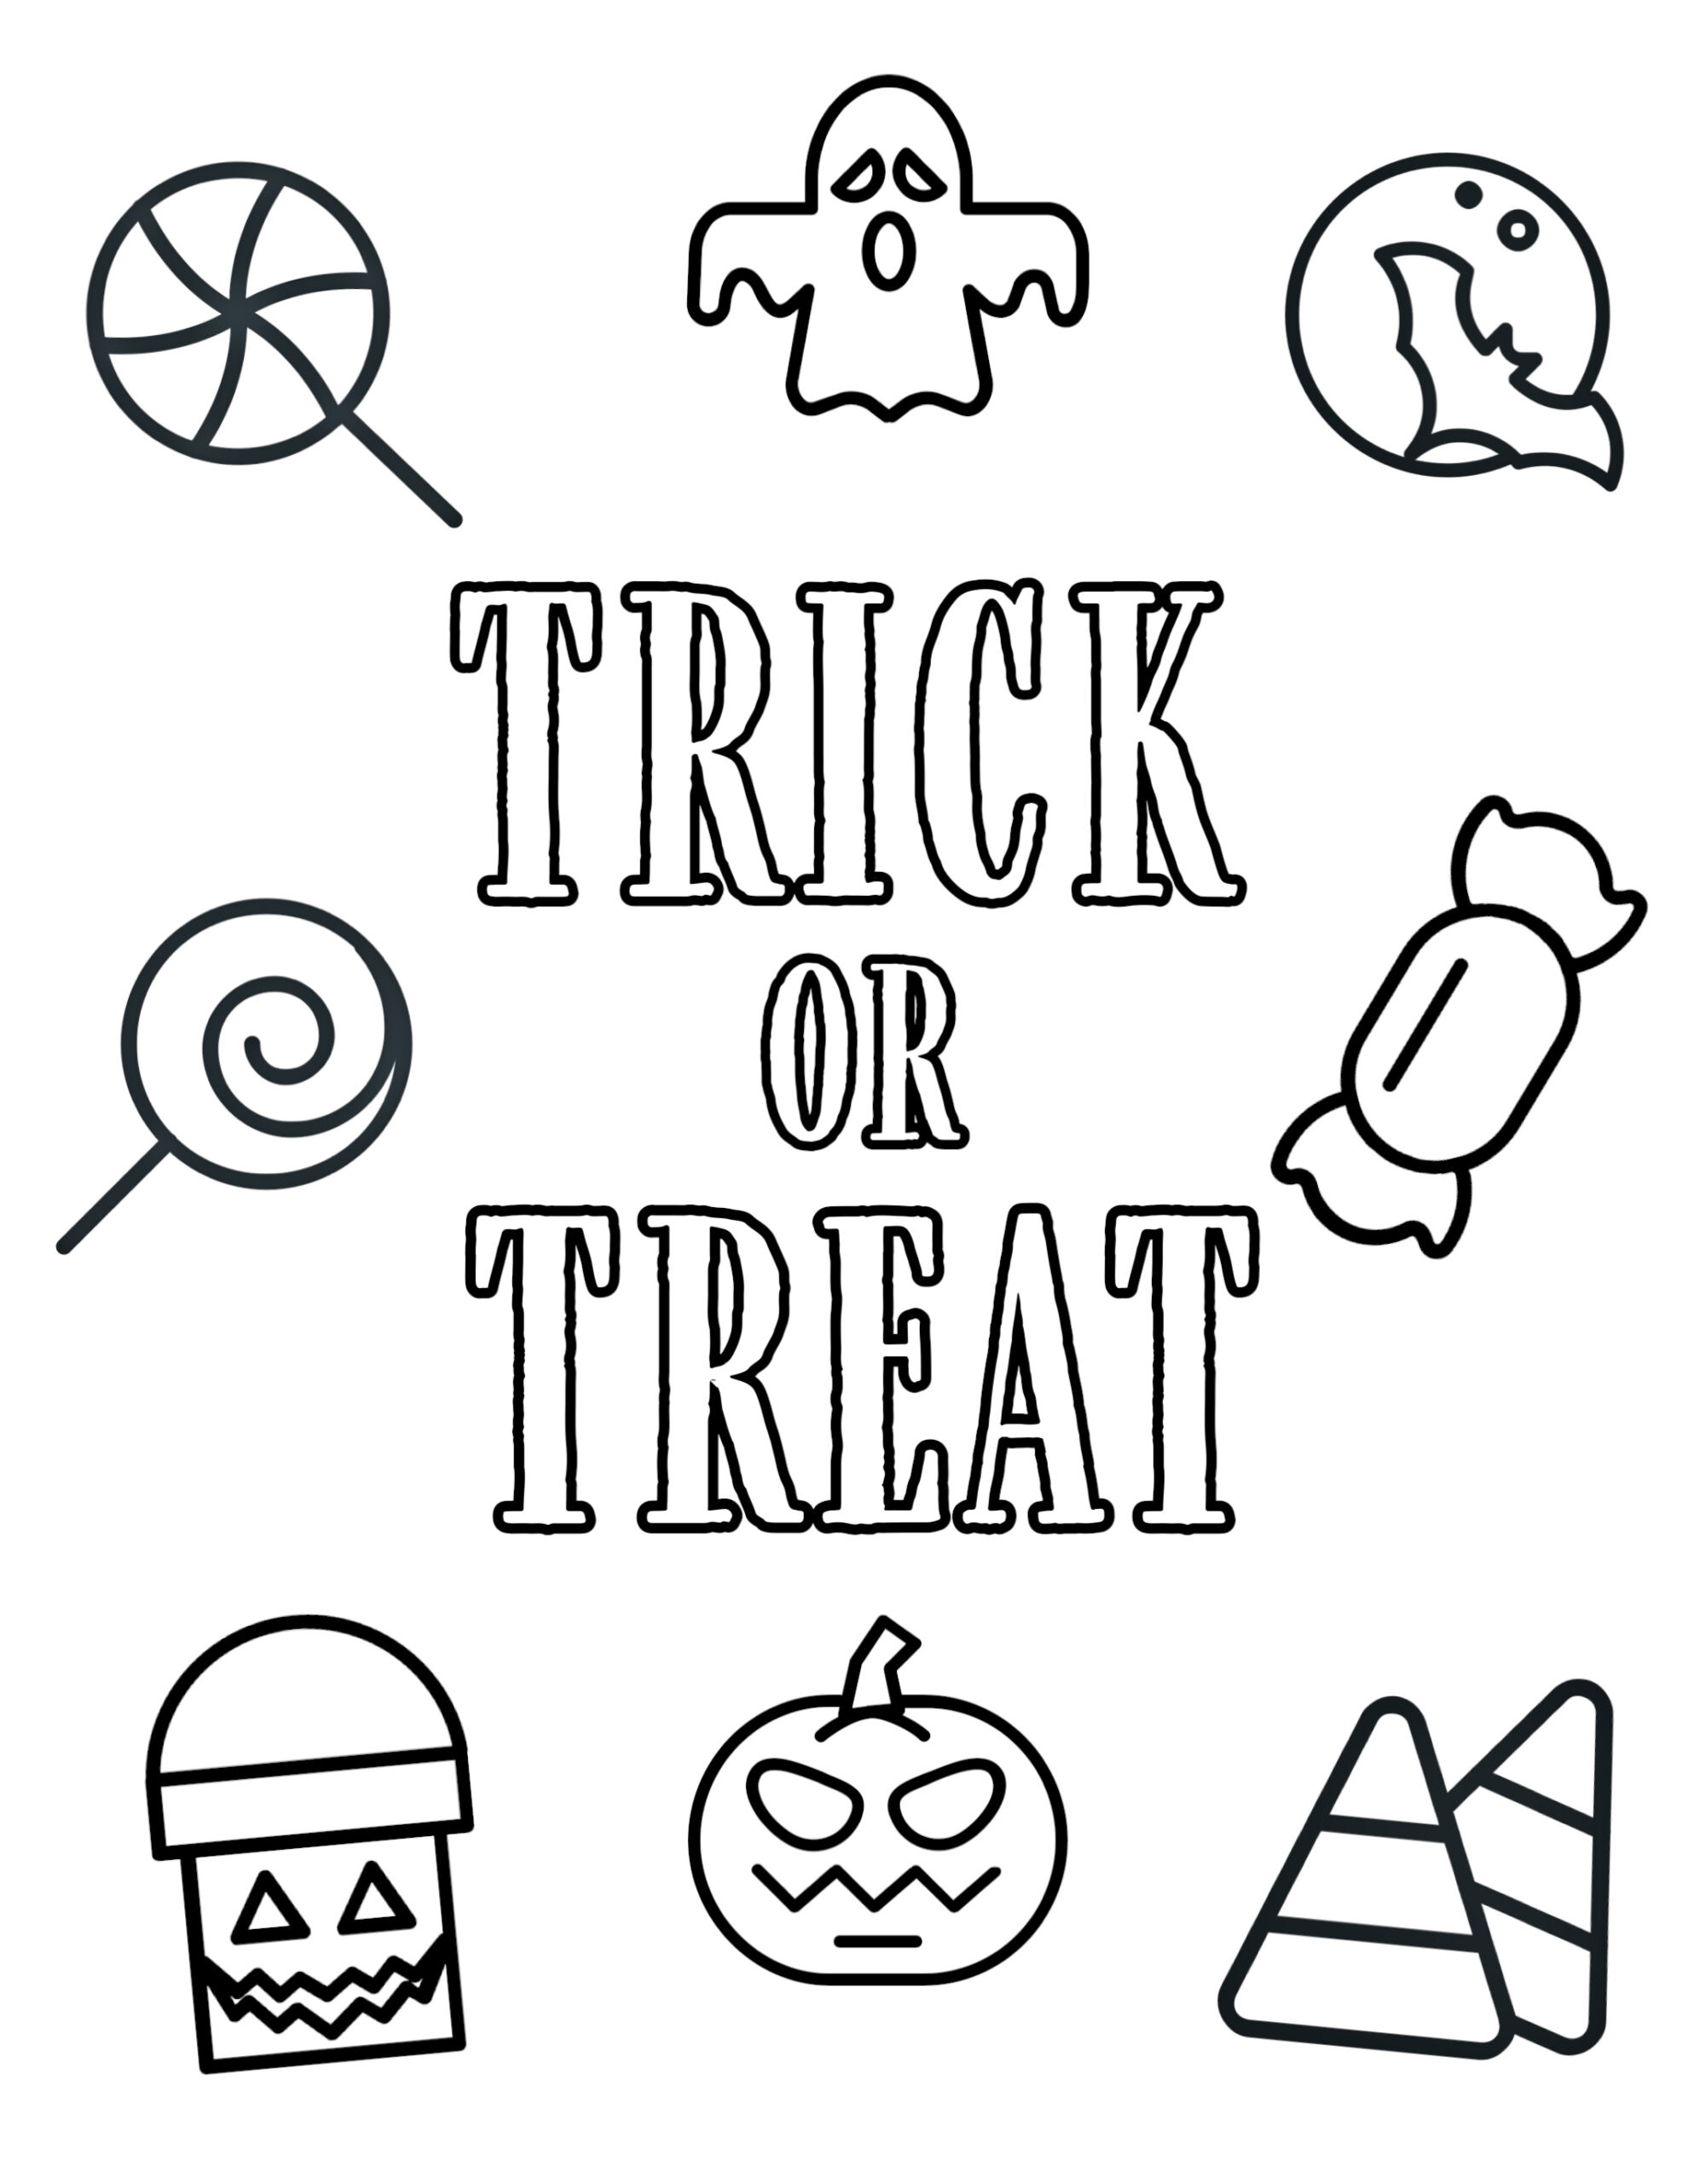 Free Printable Halloween Coloring Pages Paper Trail Design